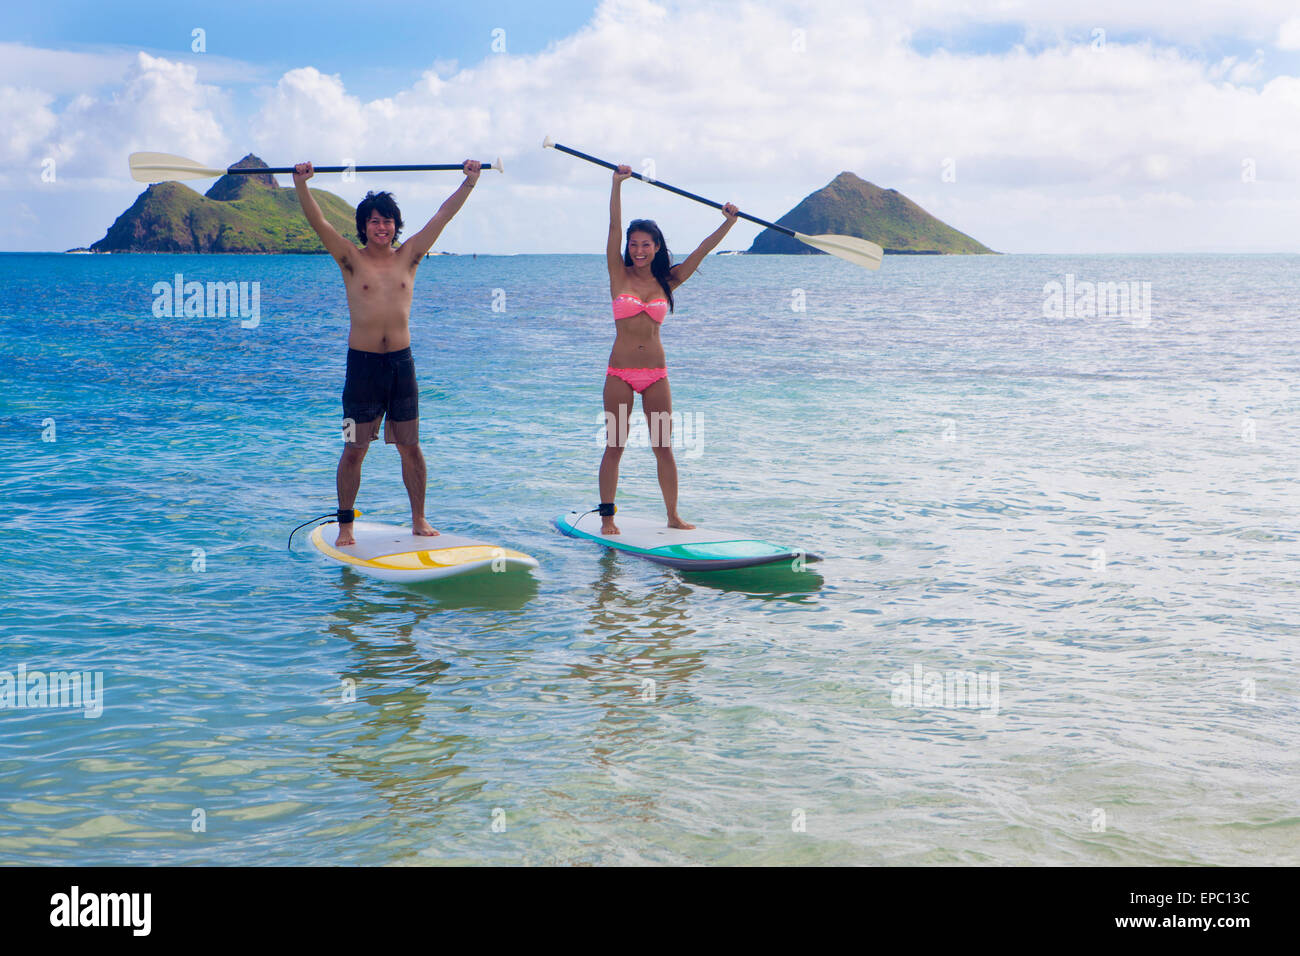 japanese couple on stand up paddleboards in hawaii Stock Photo